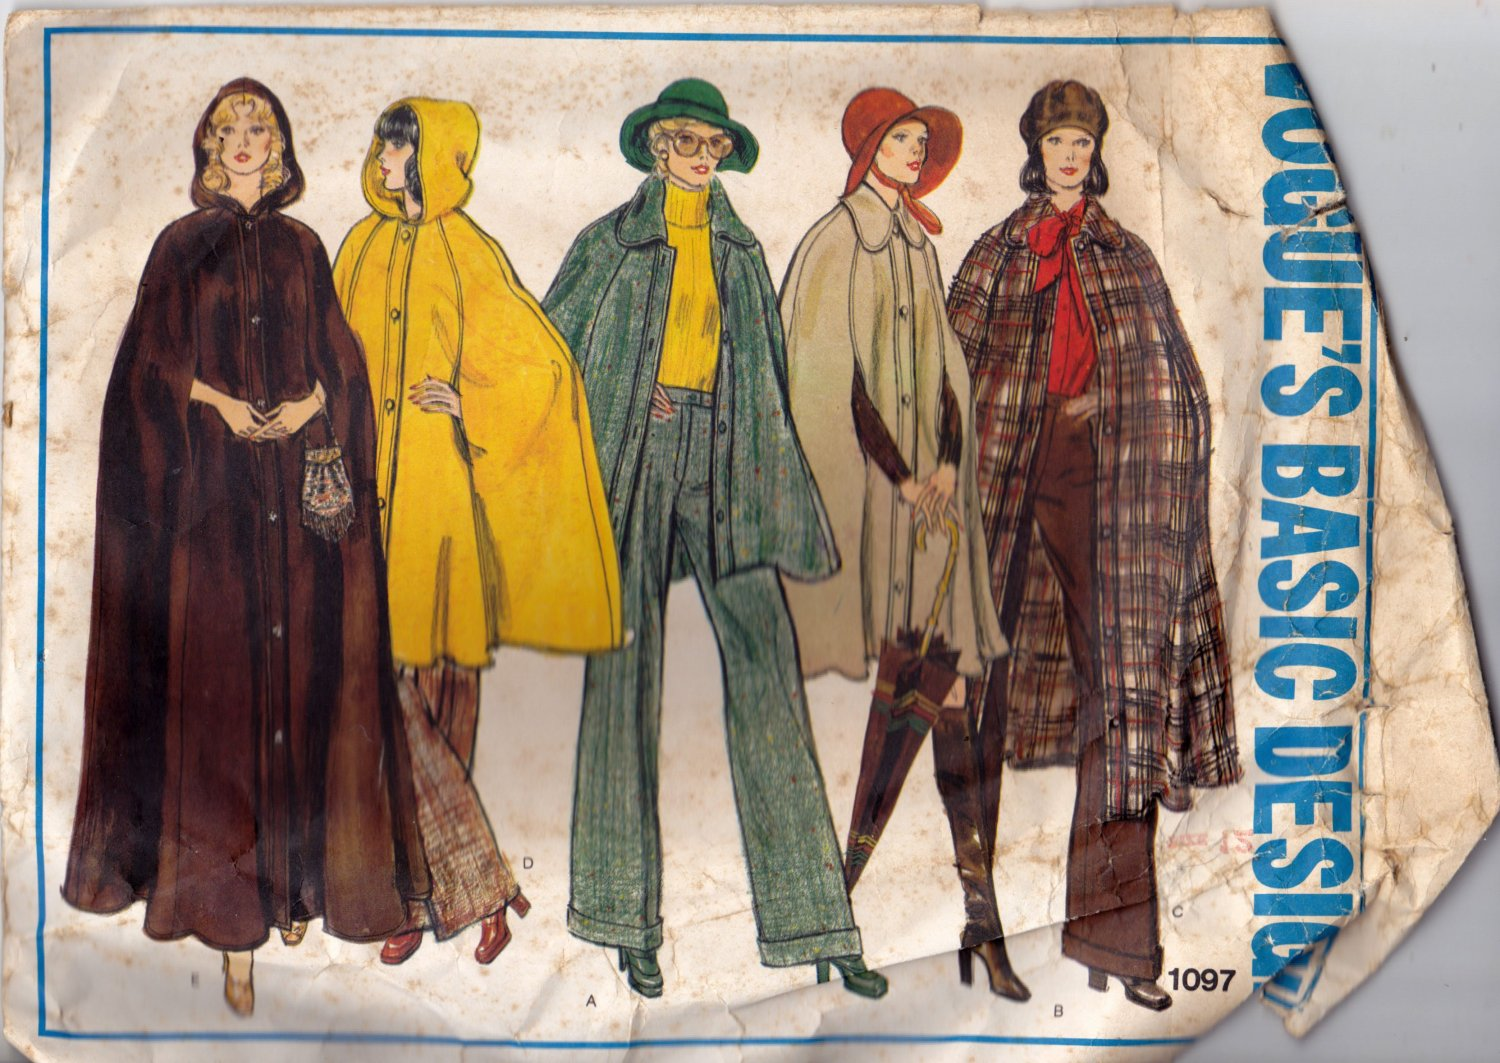 Vogue 1097 Pattern 12 Capes, may be missing pieces, 50 cents + shipping